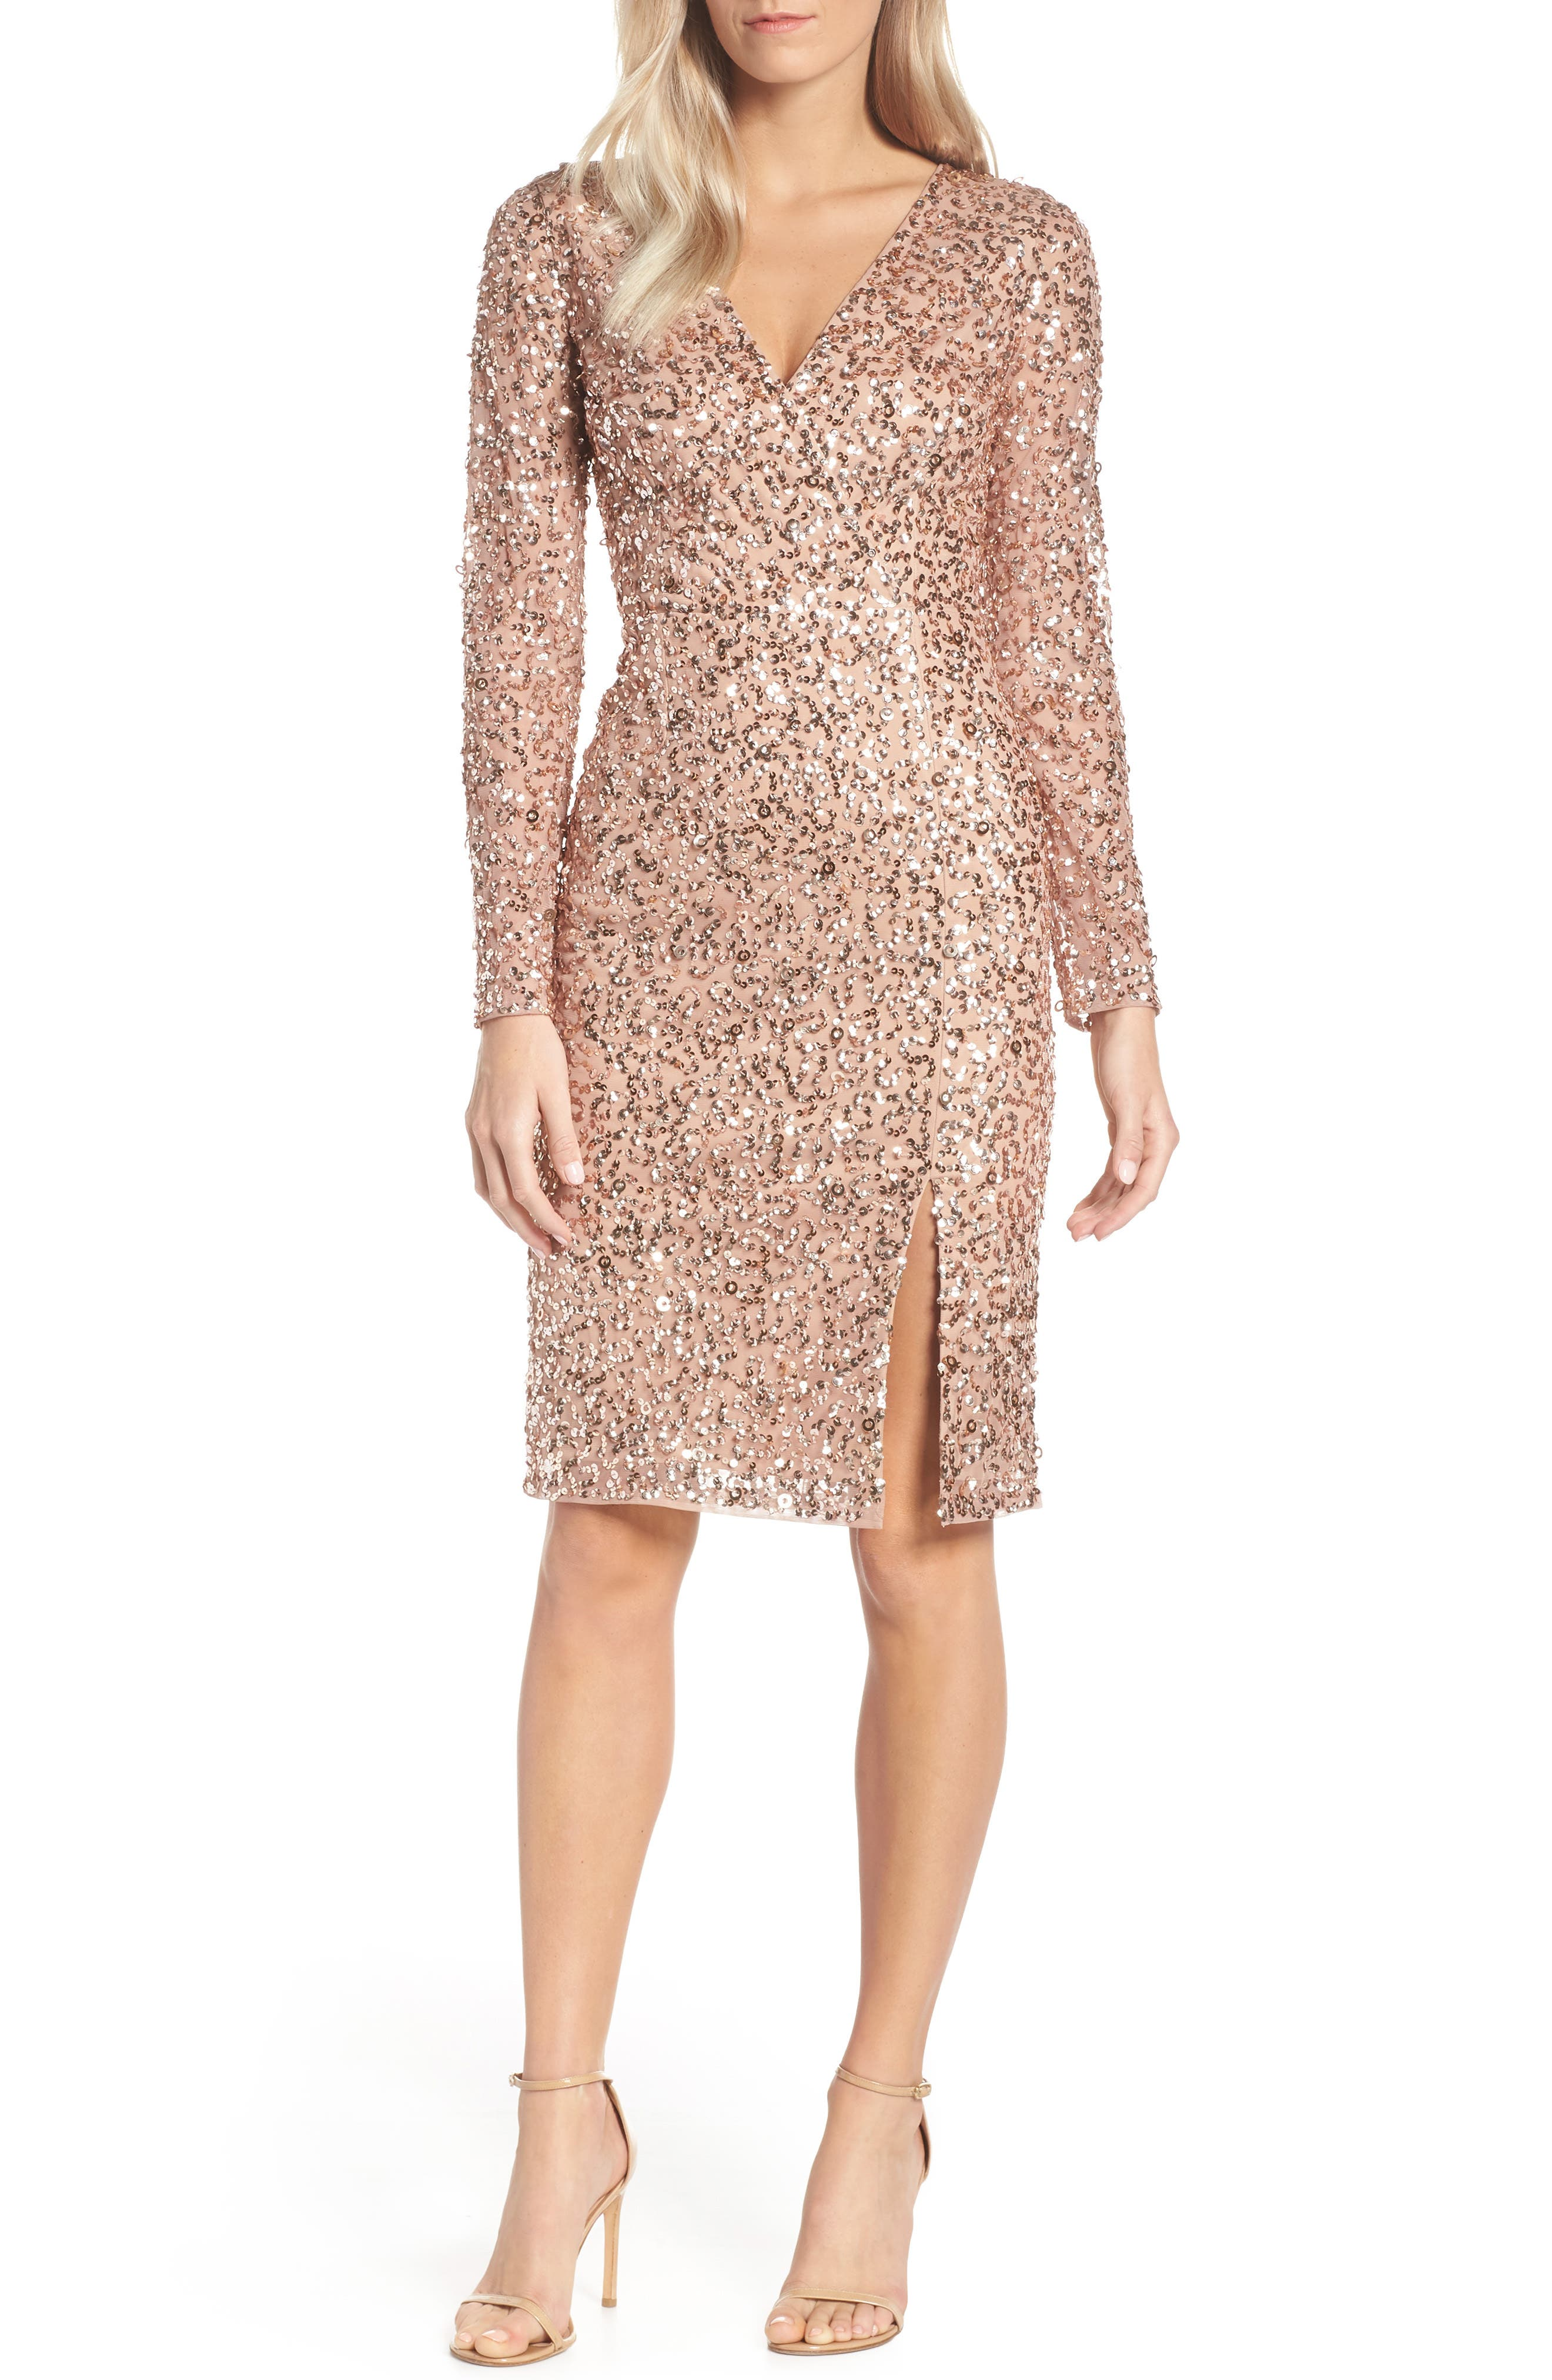 ADRIANNA PAPELL, Beaded Mesh Cocktail Dress, Main thumbnail 1, color, 680